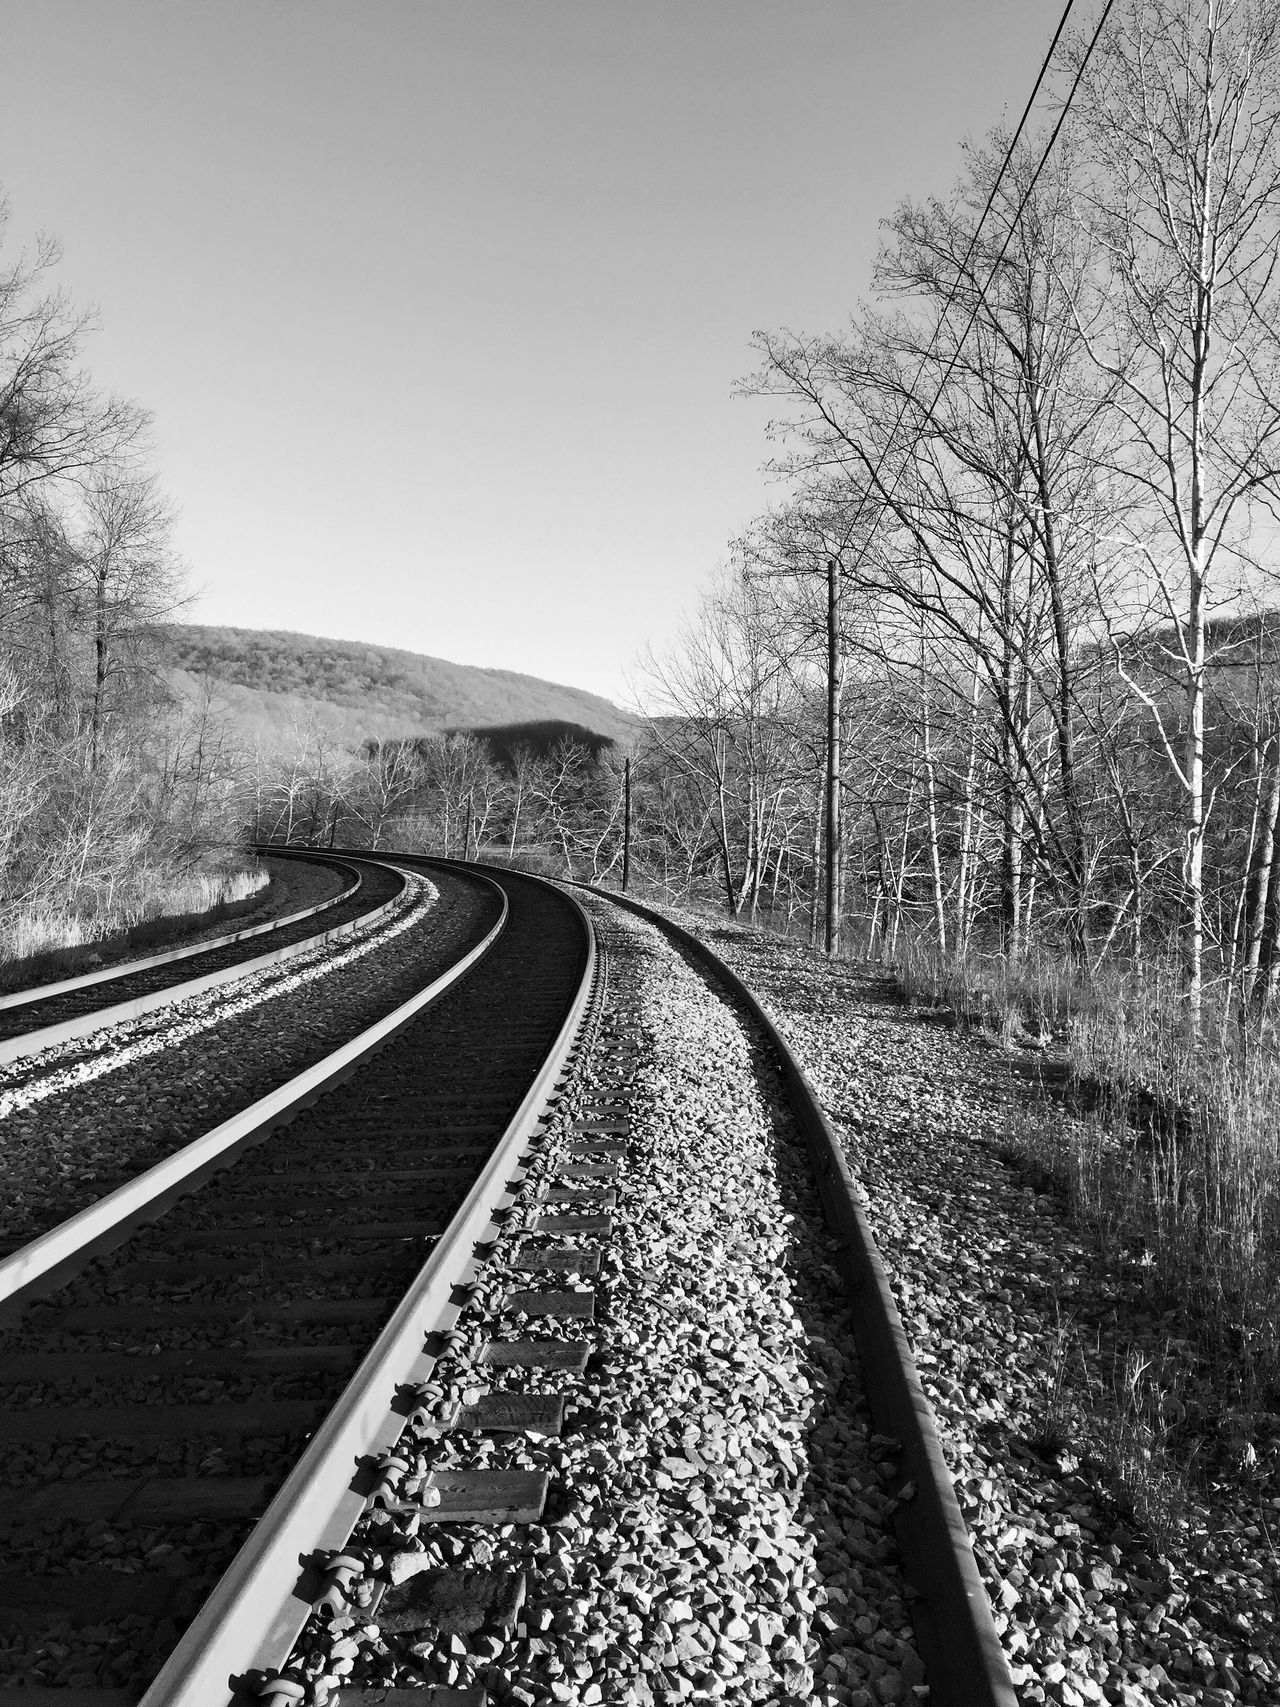 Train Tracks Traintracks Train Rail Railroad Track Railroads RailRoadTracks Railroad Photography Railroad _collection No People Outdoors Tranquil Scene Backgrounds Scenics Nature